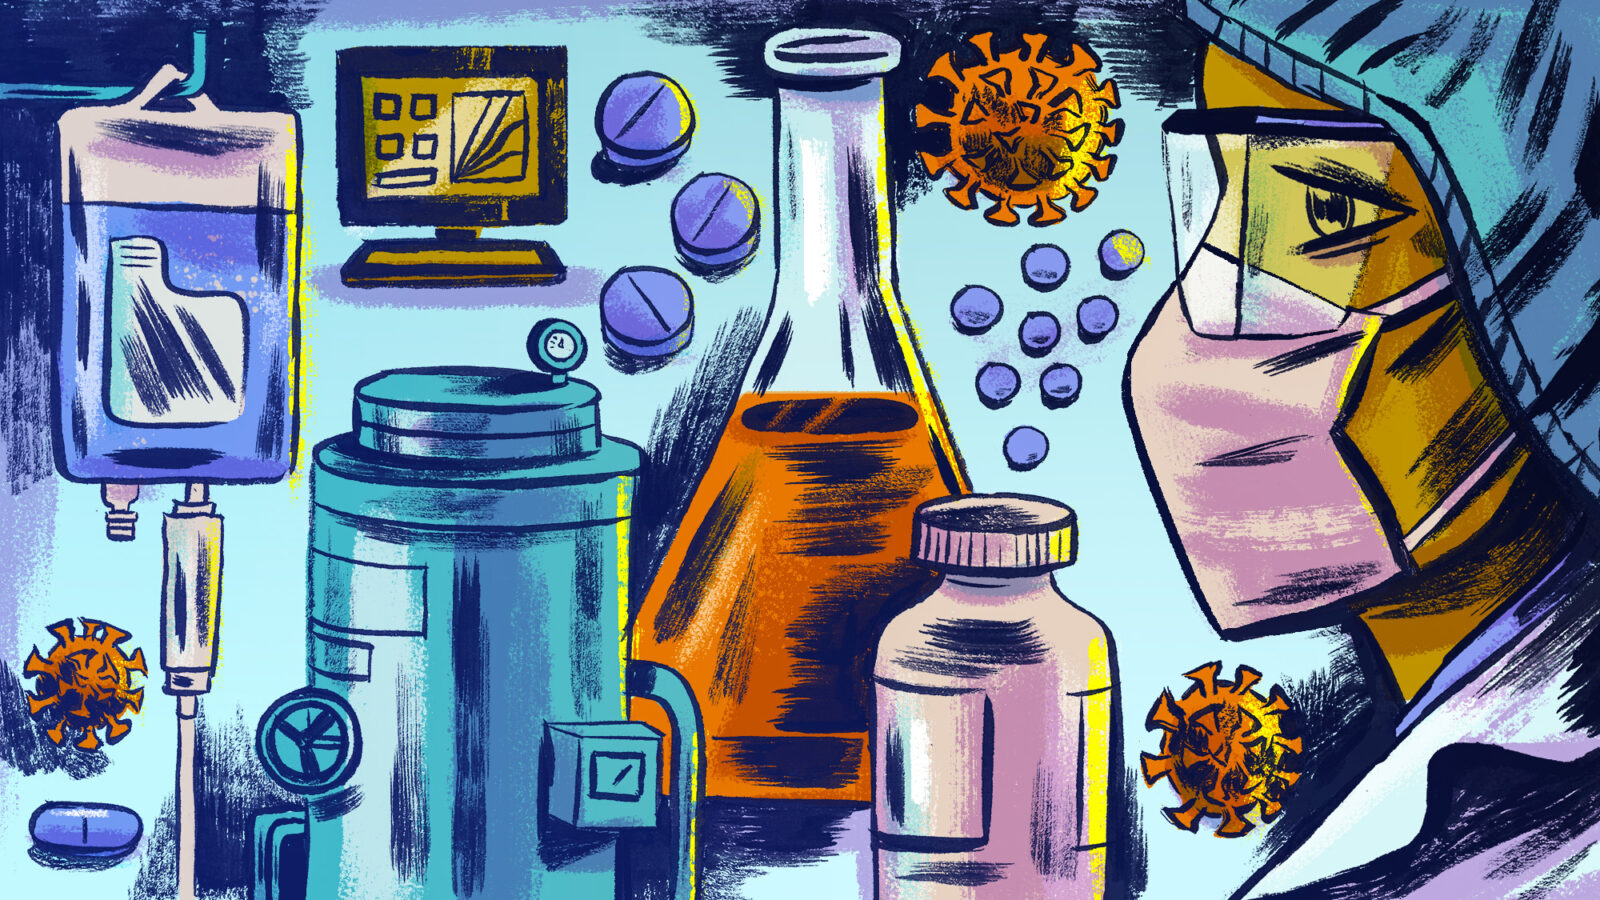 Biotech in the time of the coronavirus: With China returning to work, preclinical companies ramping back up